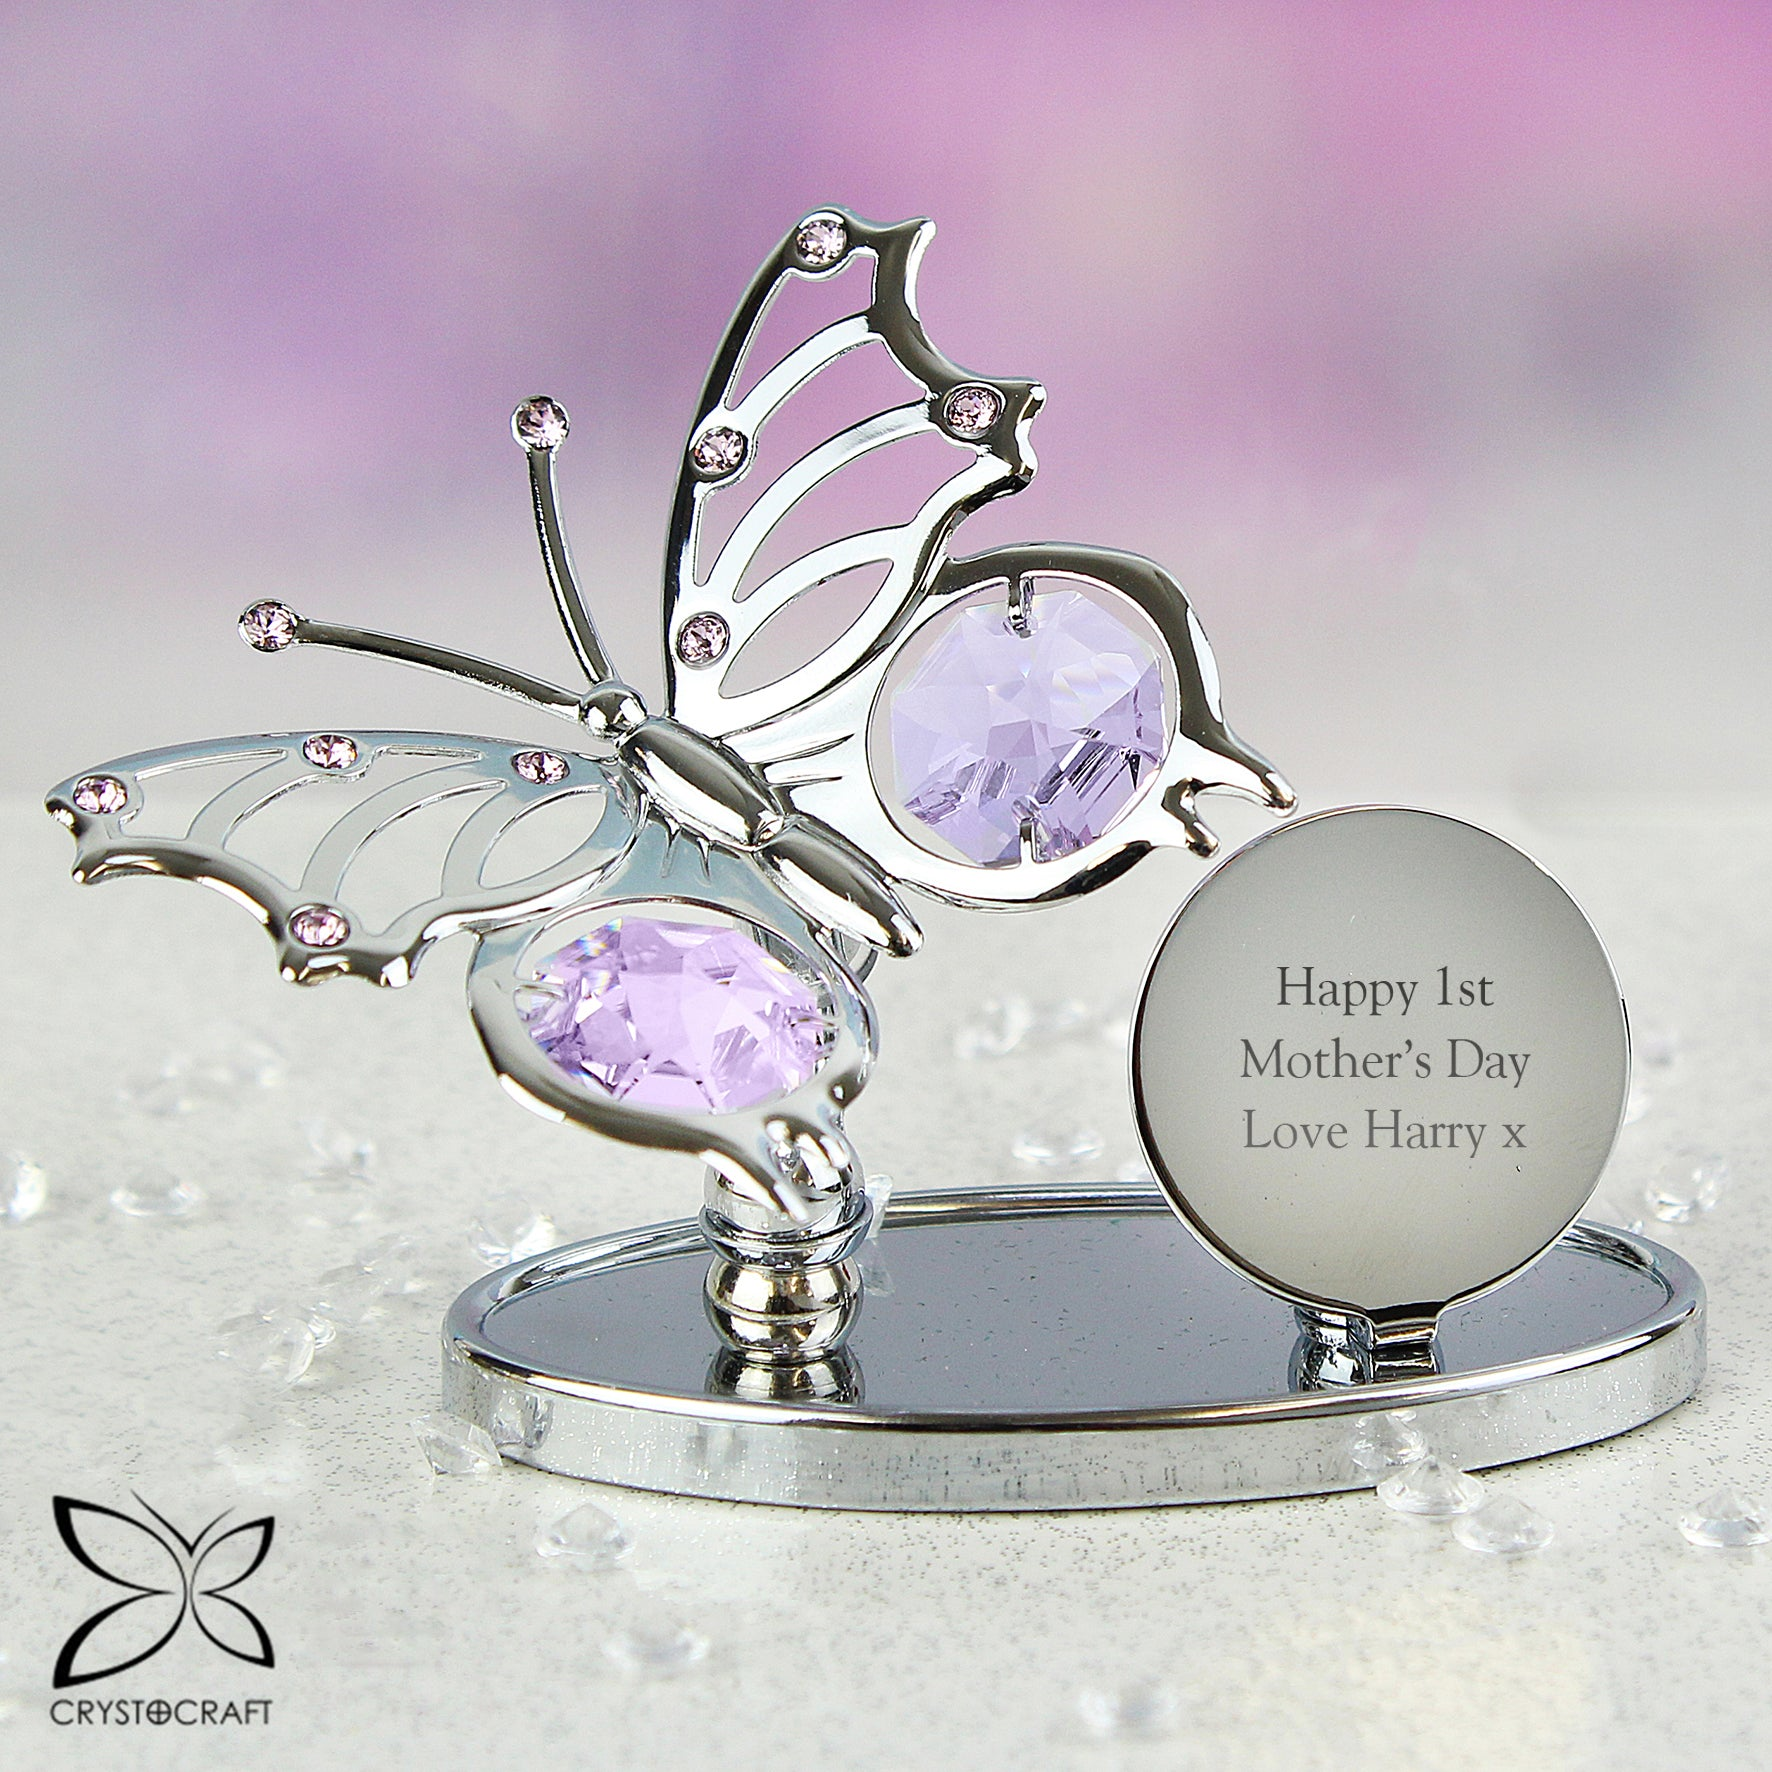 Buy Personalised Crystocraft Butterfly Ornament £14.99 at Gift Moments